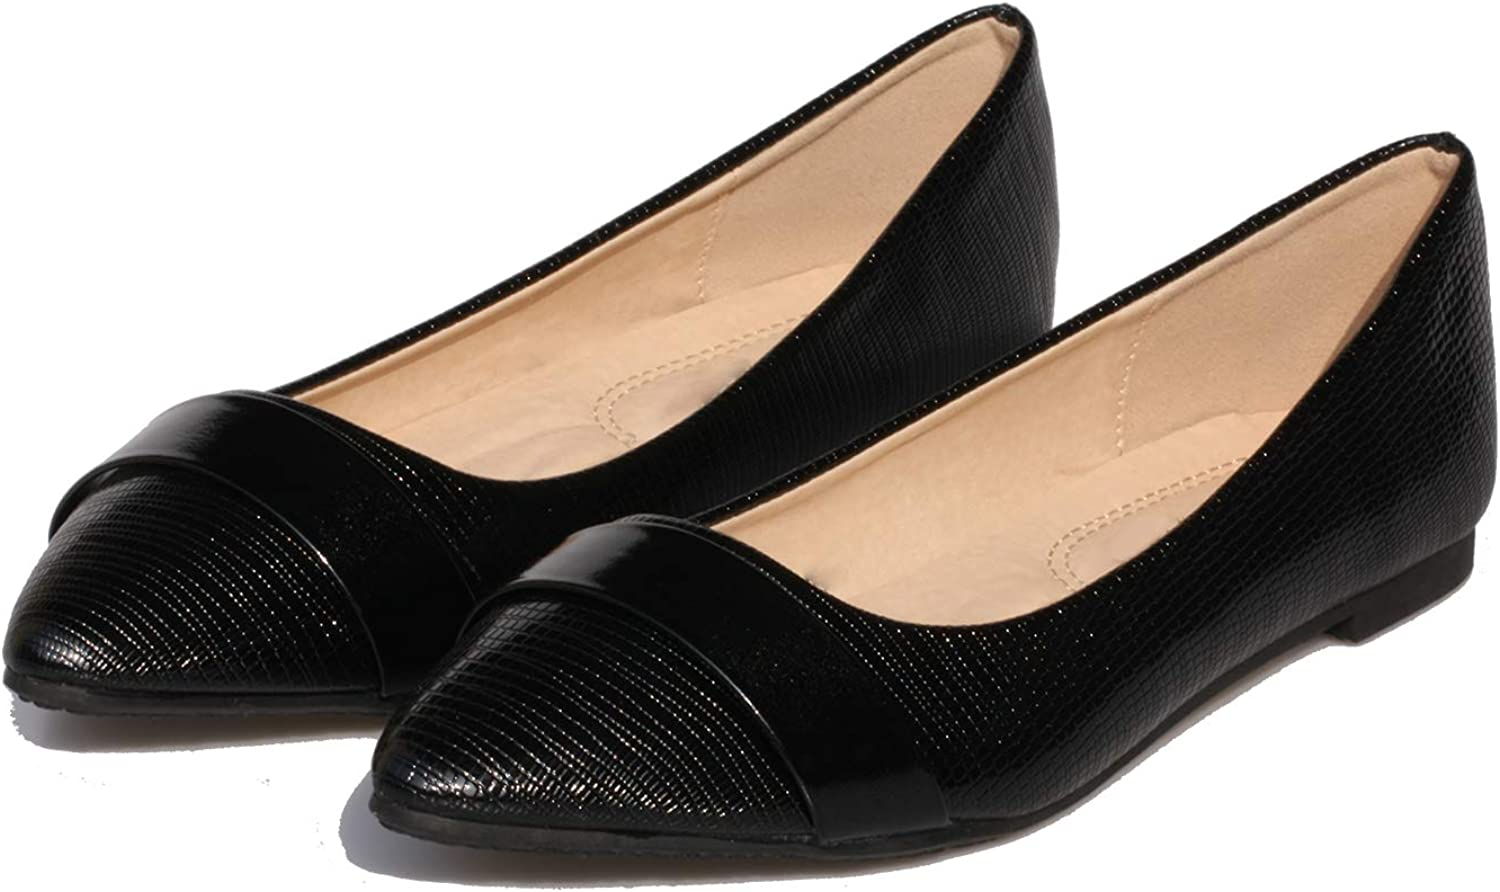 Women's Slip on Flats Pointy Toe Band Tucson Max 66% OFF Mall Decor Patent Leather Boat